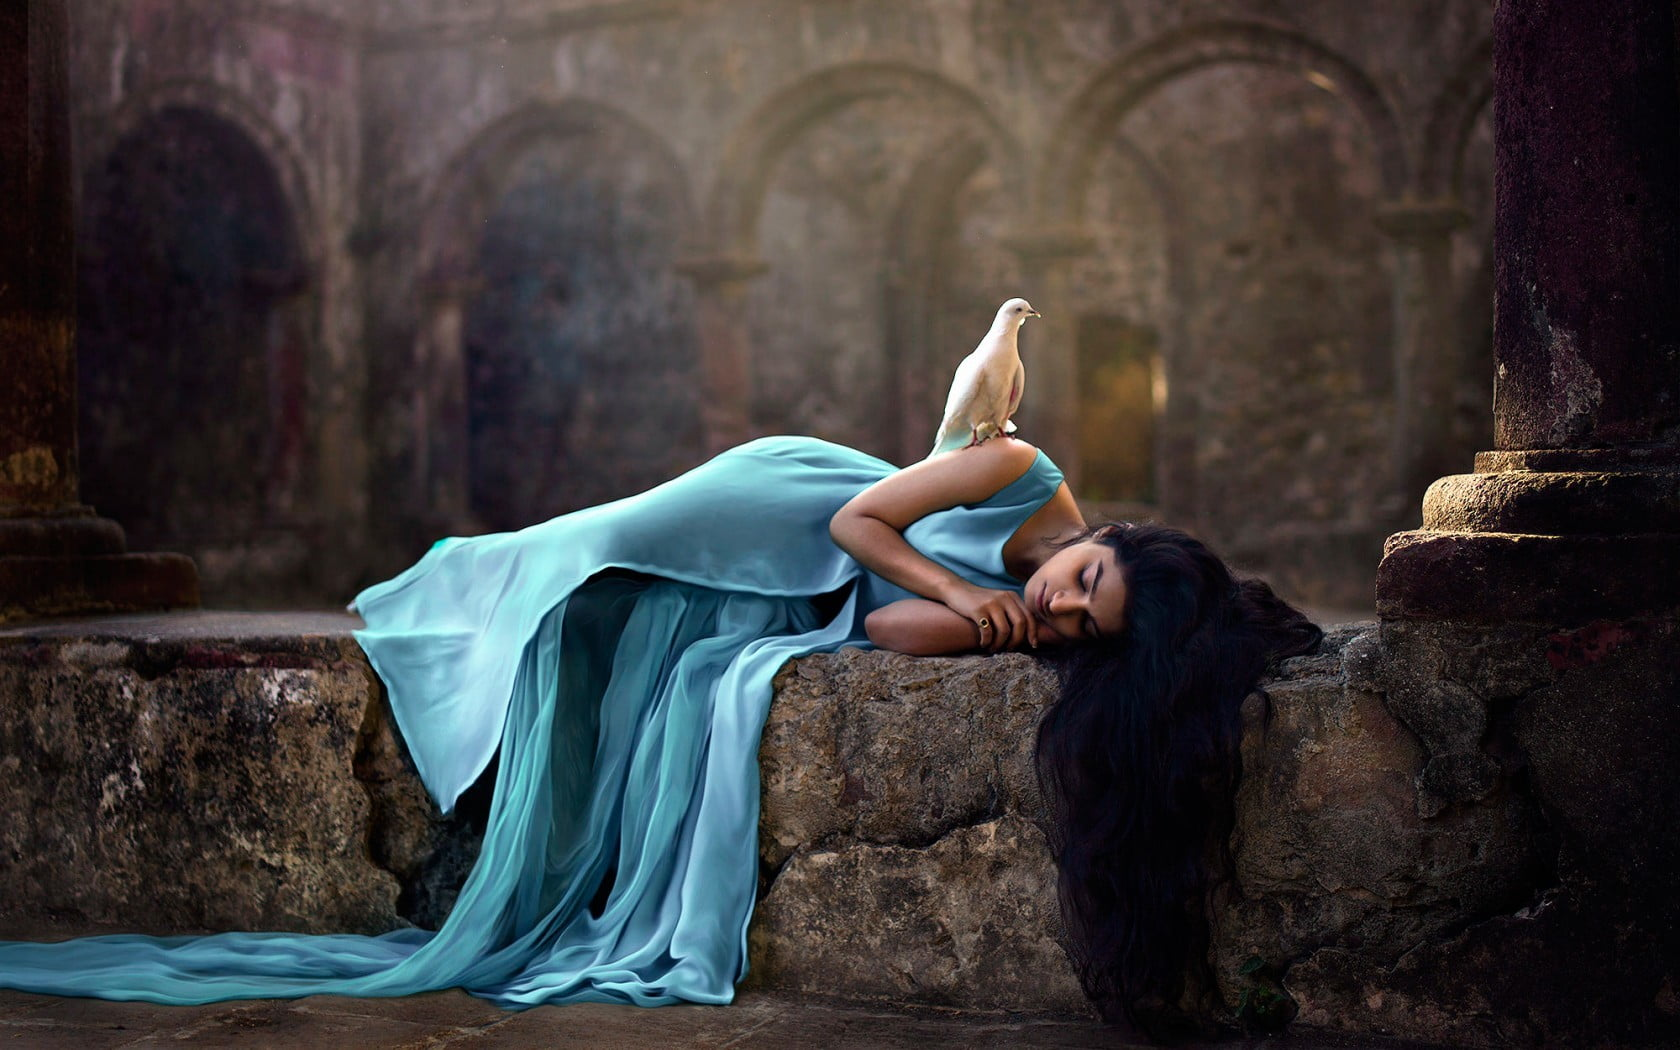 women-model-blue-dress-lying-down-wallpaper-922b9a85c22ea912fdf608460166fd9b